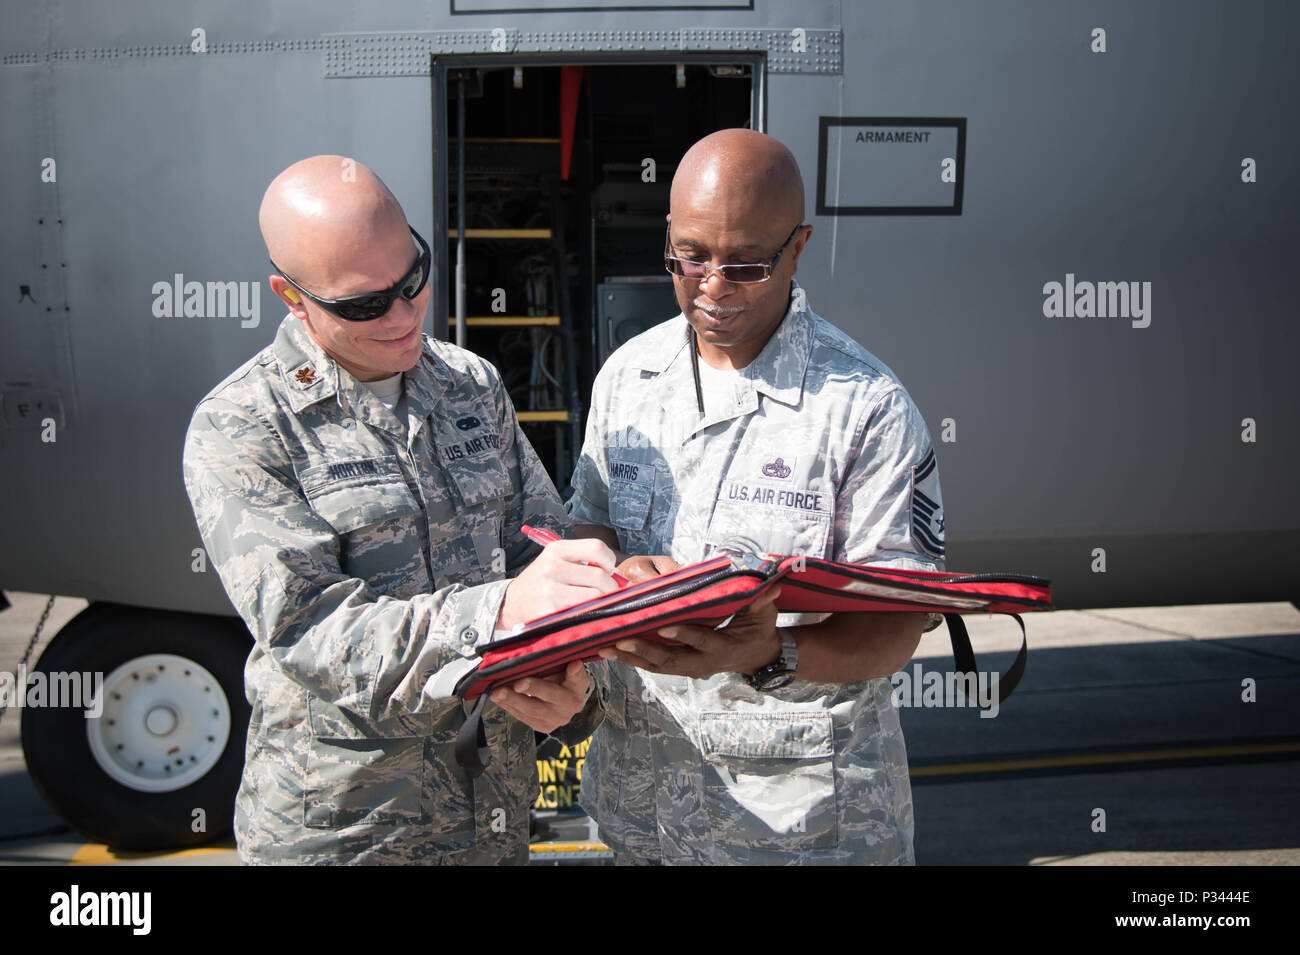 Maj. Brian Horton, 803rd Aircraft Maintenance Squadron commander and Senior Master Sgt. Marshall Harris, 803rd AMXS flight chief review an aircraft maintenance checklist Aug. 22. The 403rd Wing will be gaining the new 803rd Aircraft Maintenance Squadron during an activation ceremony Sept. 11. (U.S. Air Force photo/Senior Airman Heather Heiney) - Stock Image